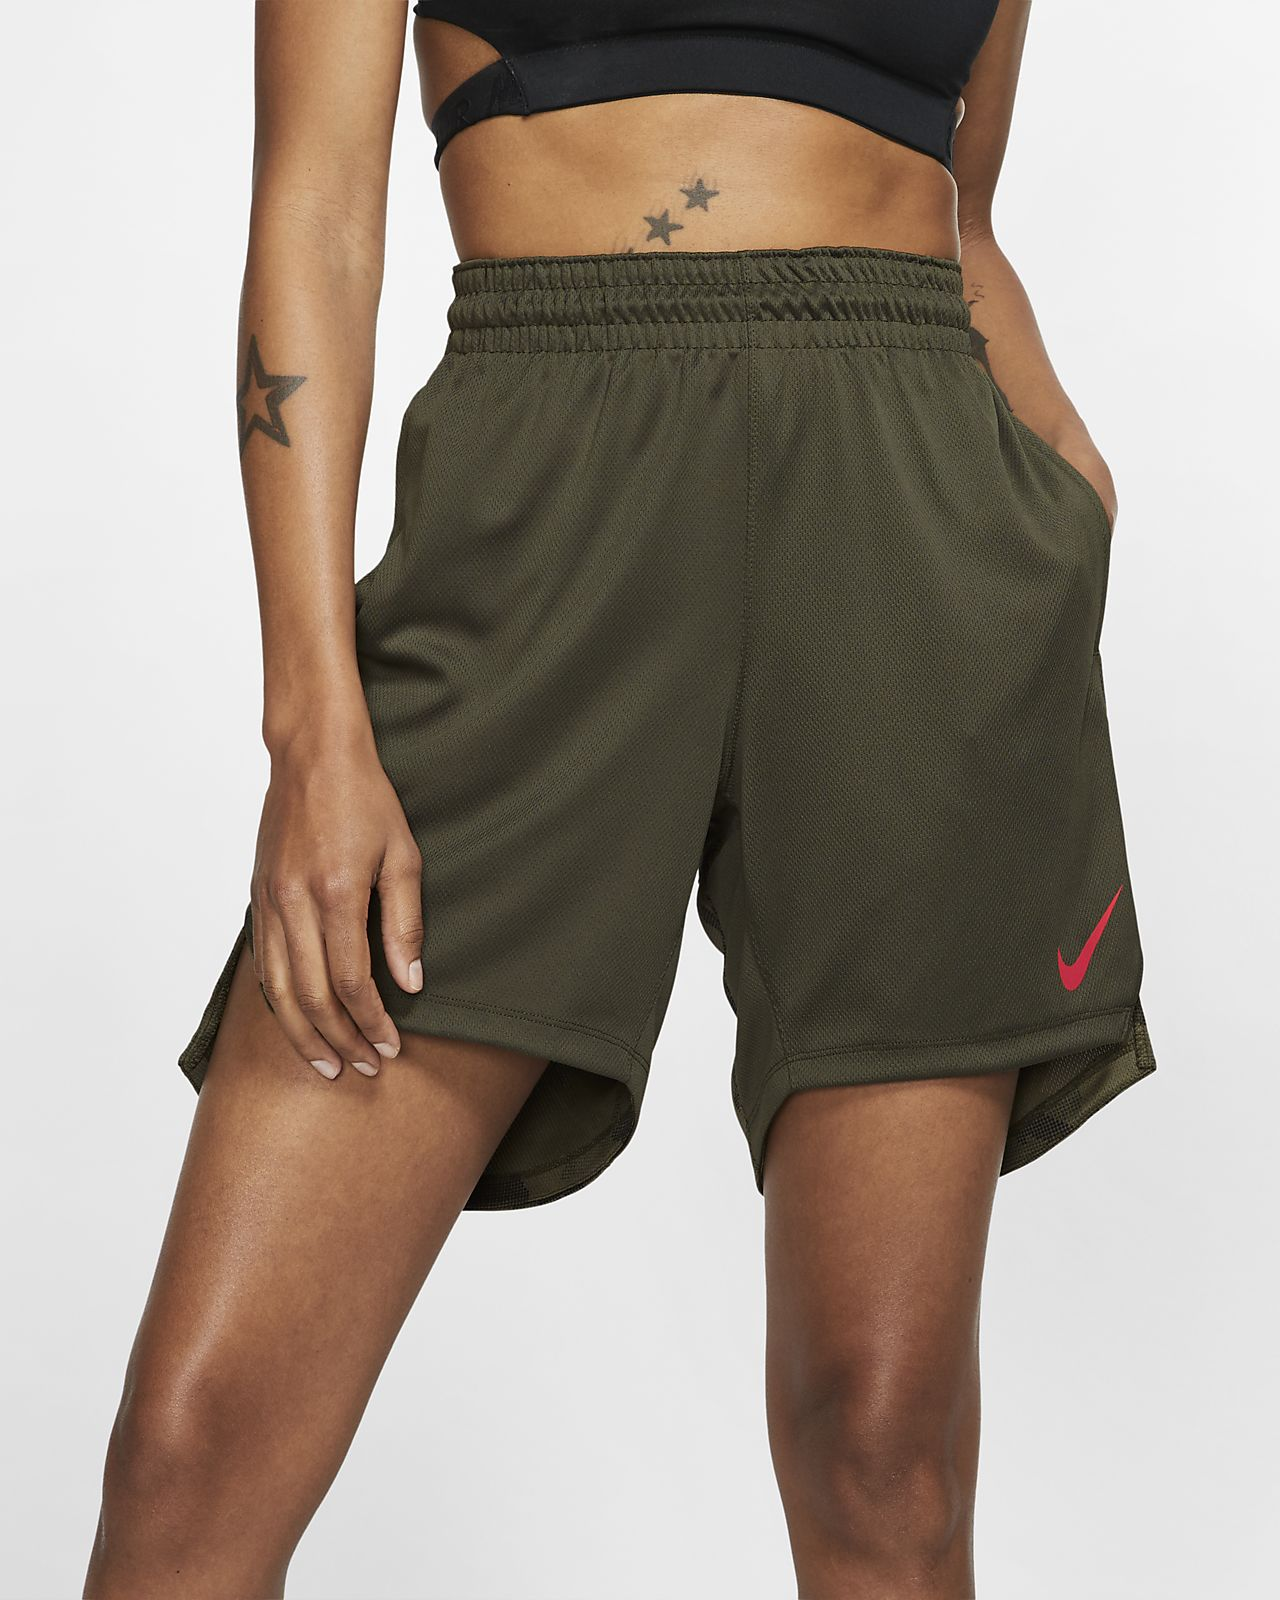 Nike Elite Women's Knit Basketball Shorts